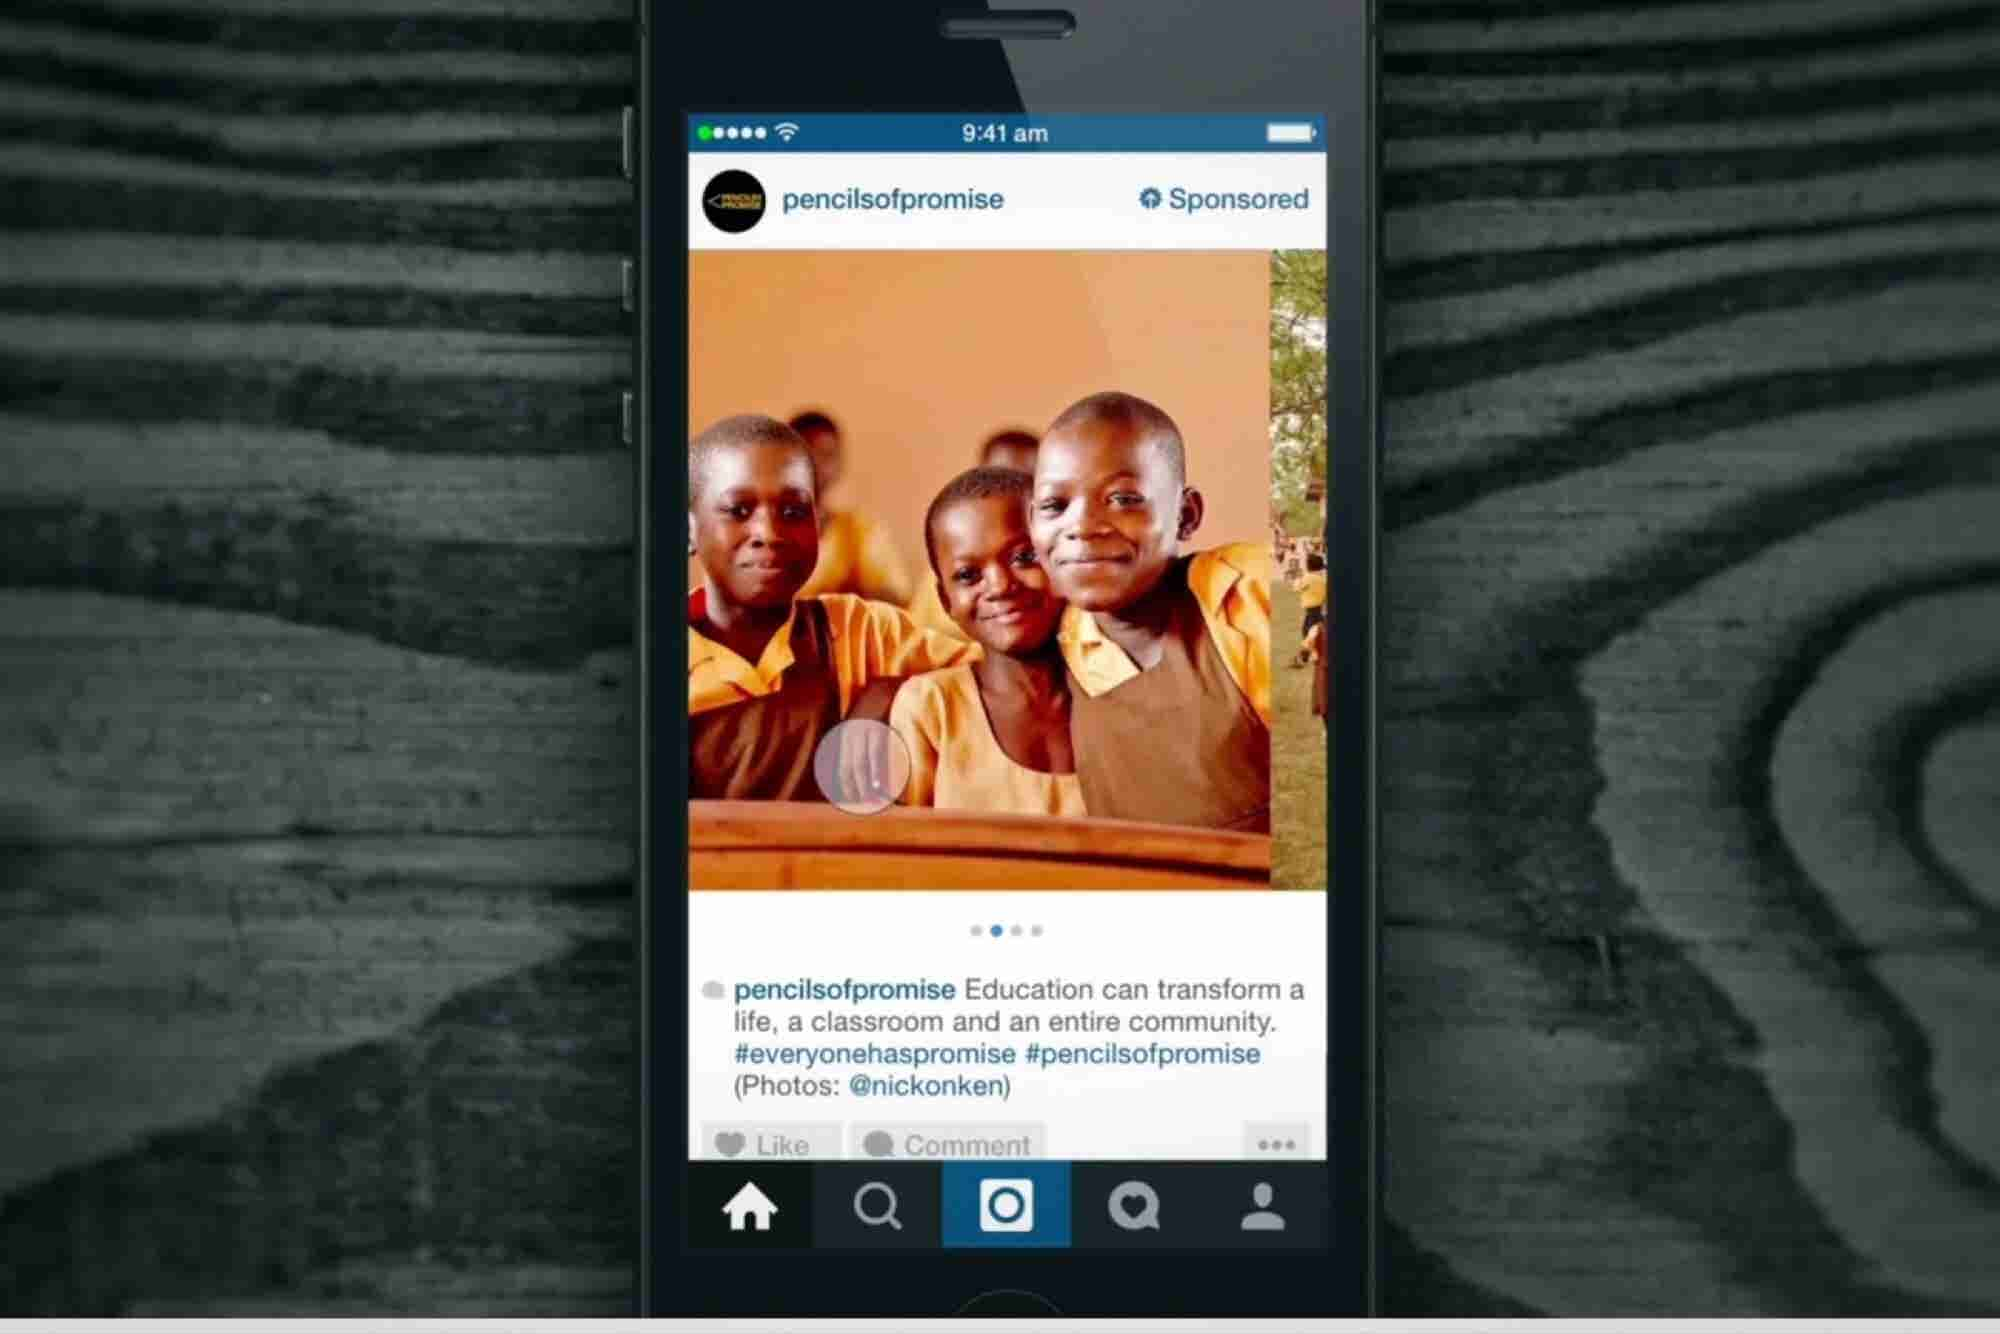 To Leave a Mark on Social Media, It's Less About Execution and More About the Message